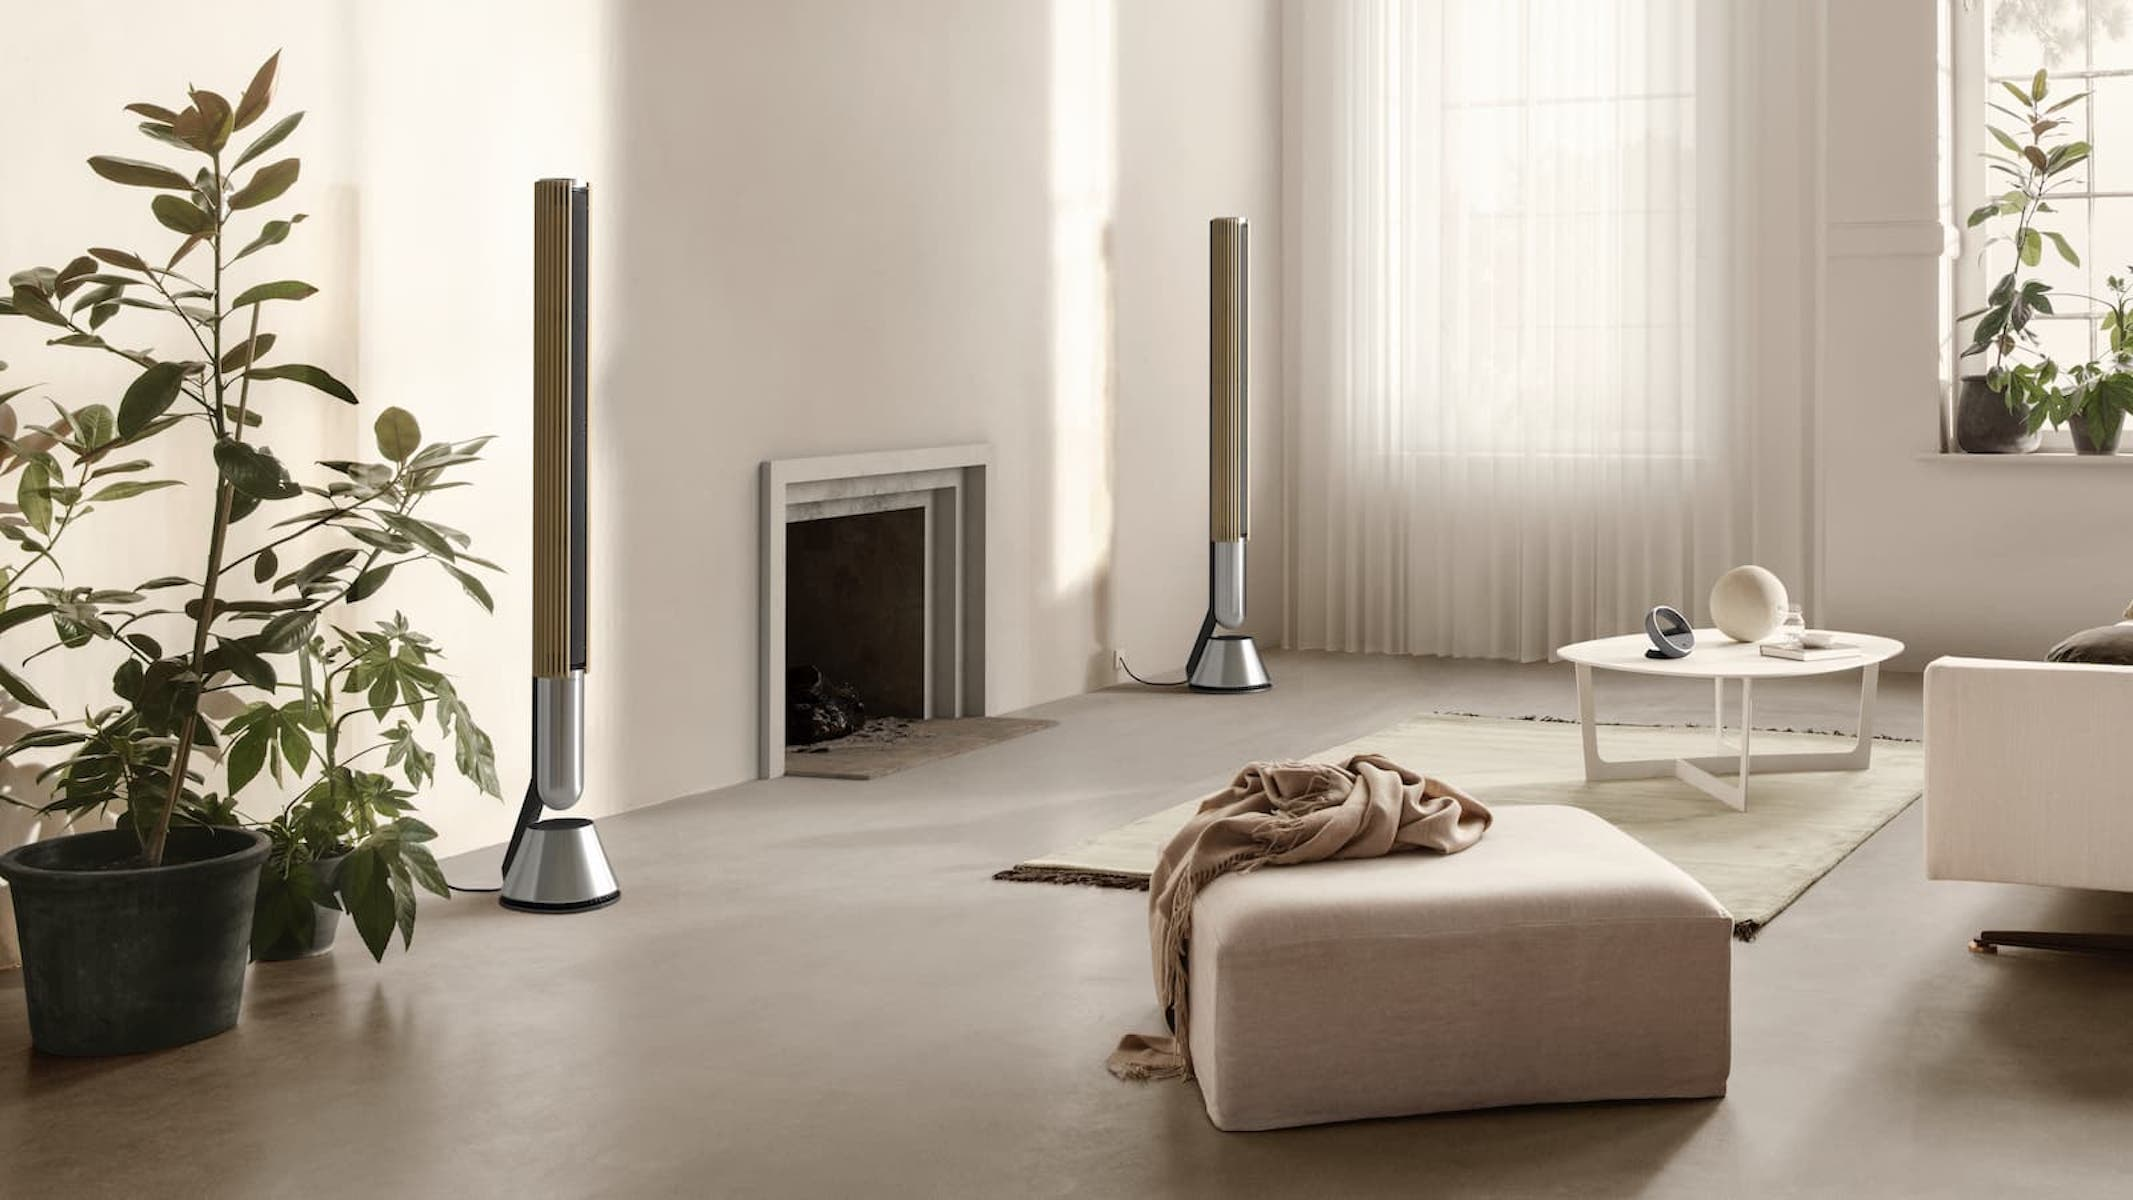 Beolab 28 speakers in the living room